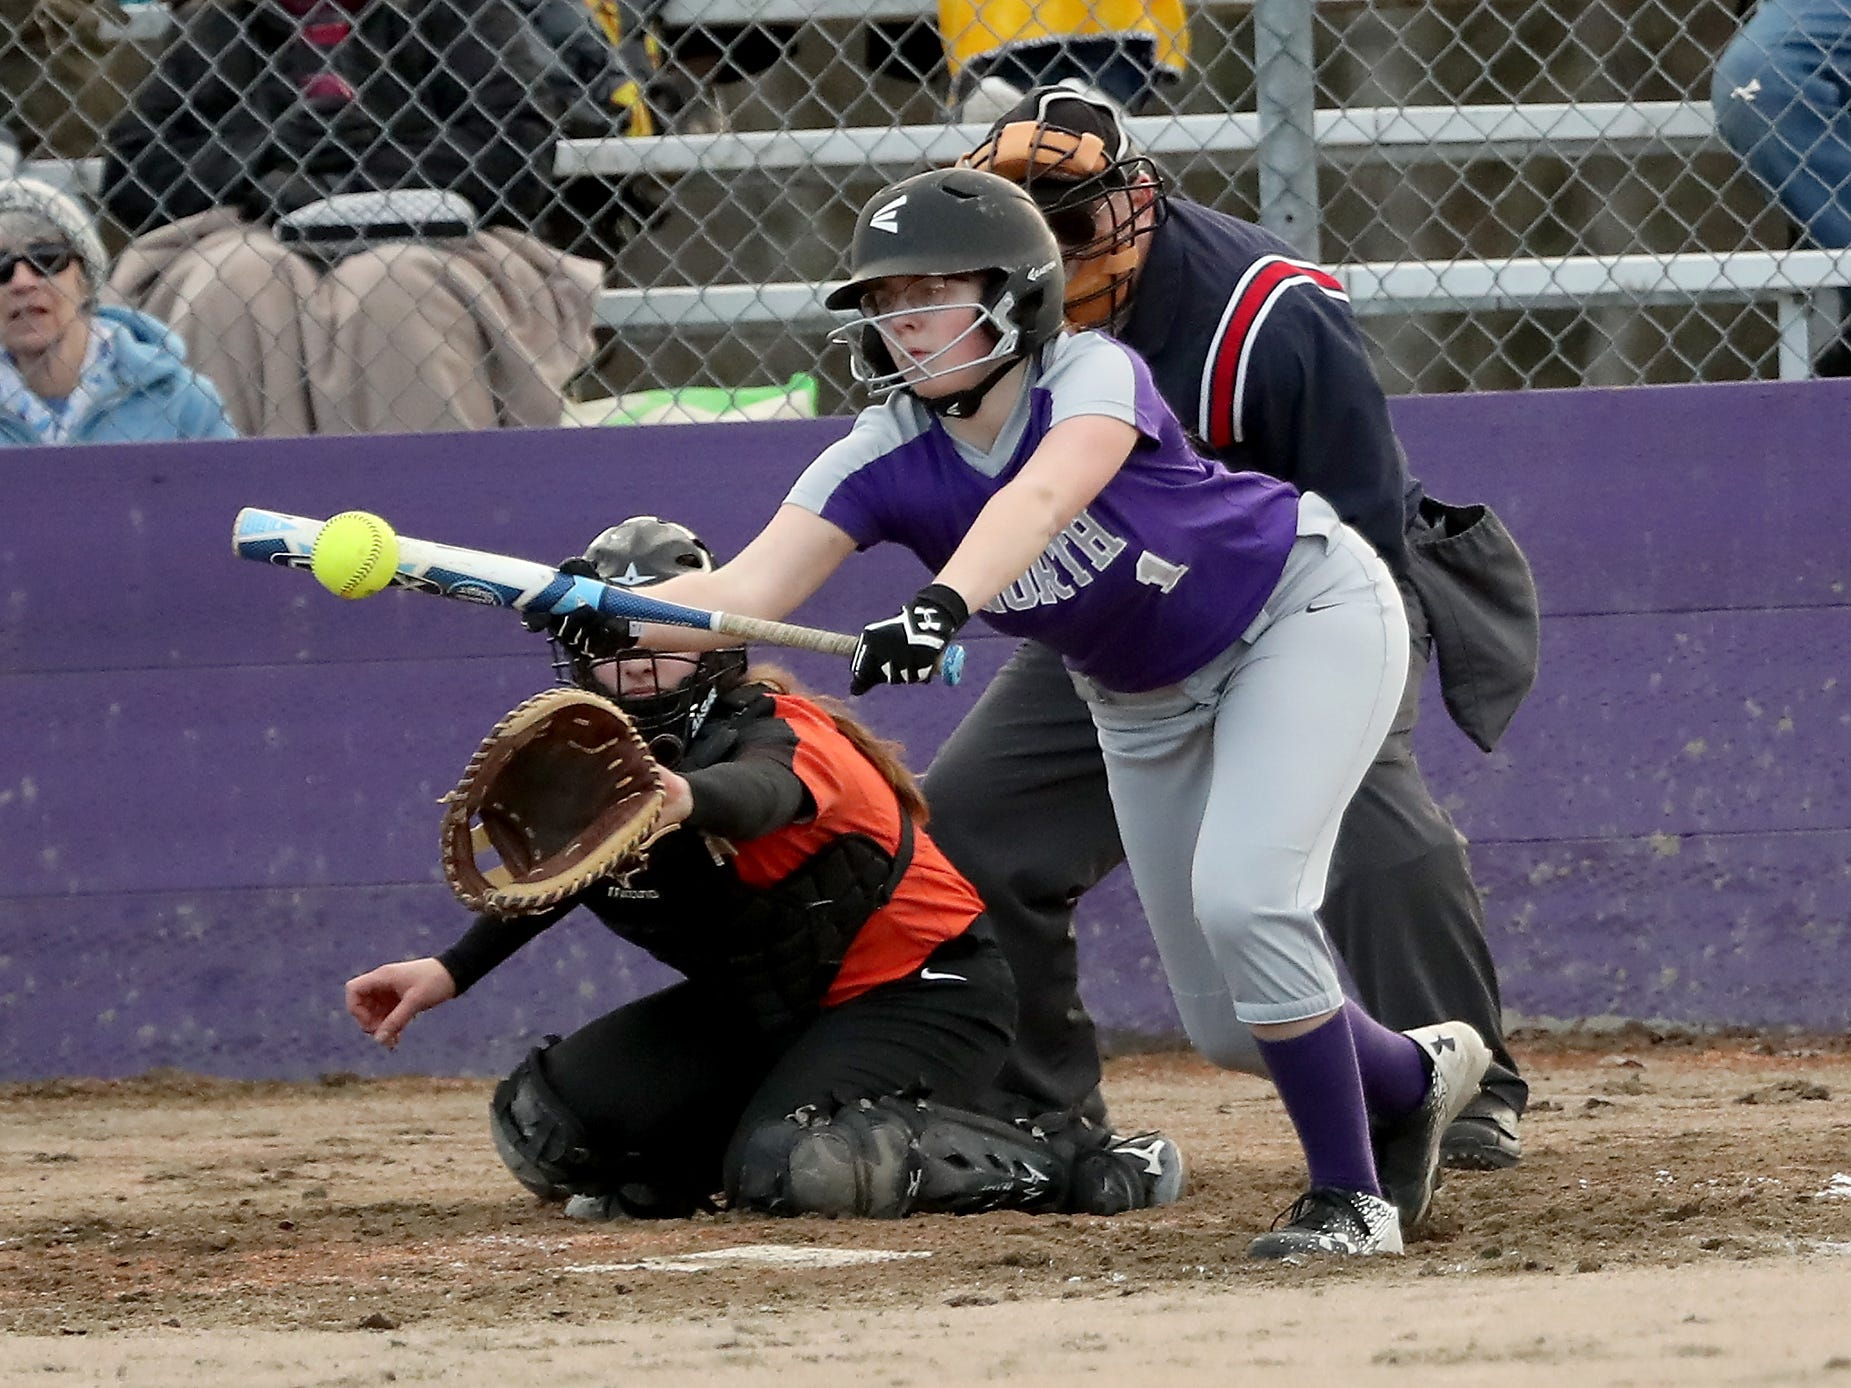 North Kitsap's Samantha Burgh (1) connects with a bunt against Central Kitsap Softball in Poulsbo on Wednesday, March 13, 2019.